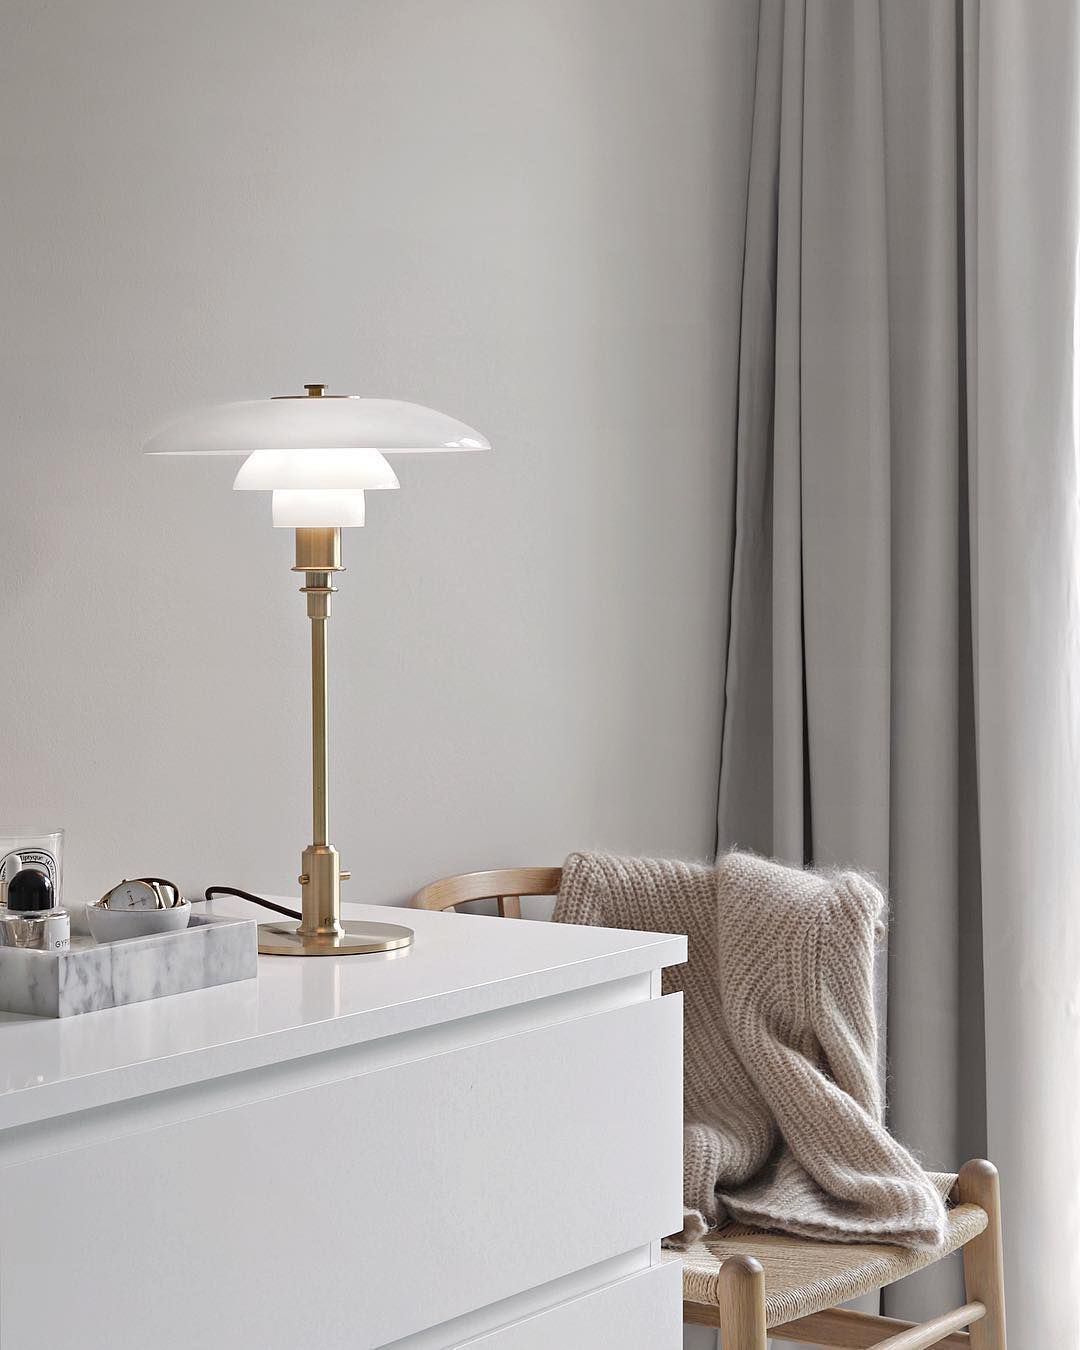 Louis Poulsen Ph 3 2 Reklame Ad The Louispoulsen Ph 3 2 Table Lamp Limited Edition Is